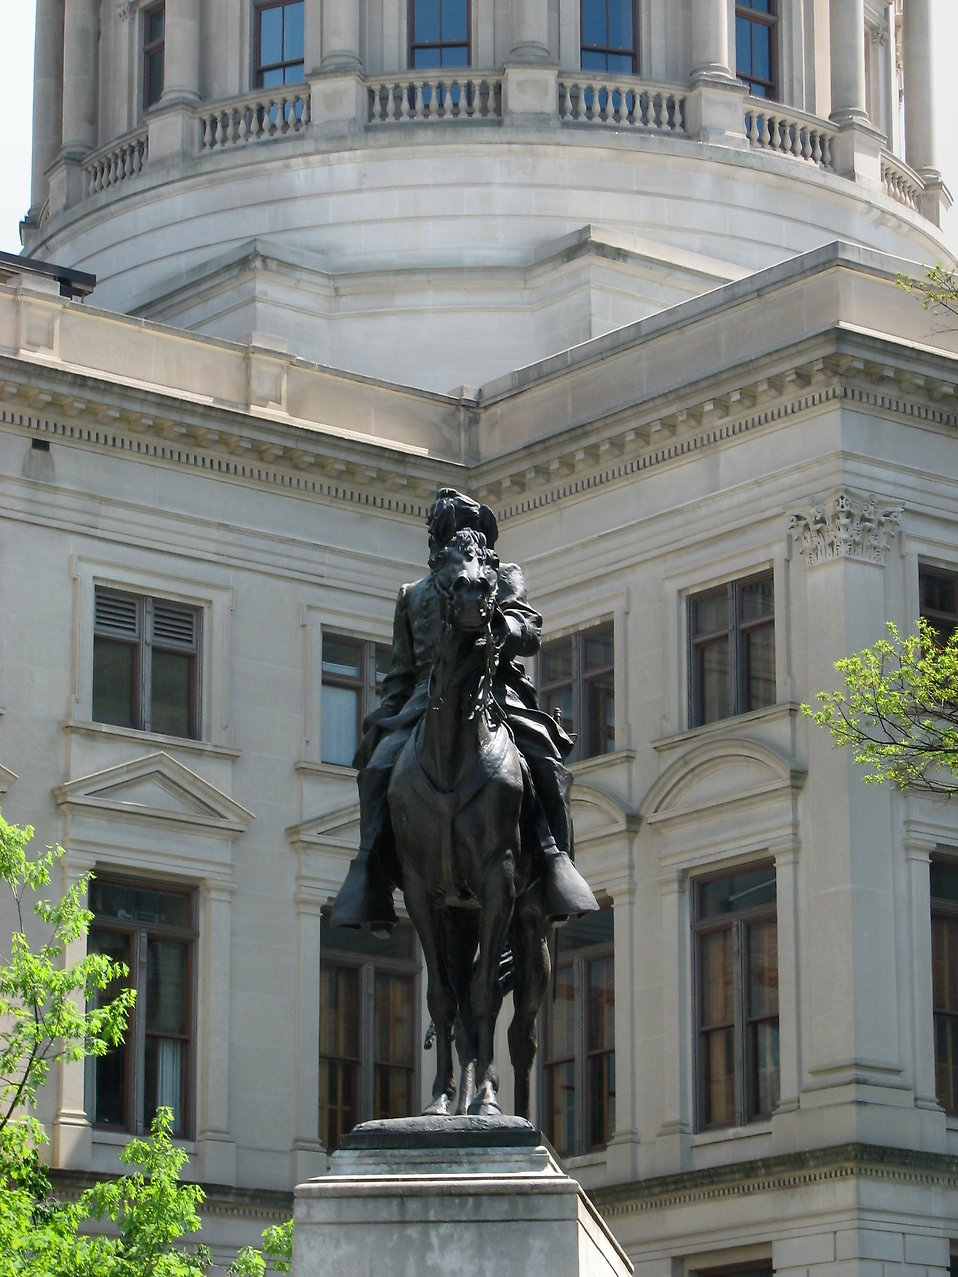 Statue of a man on a horse at the Georgia State Capitol building in Atlanta, Georgia : Free Stock Photo